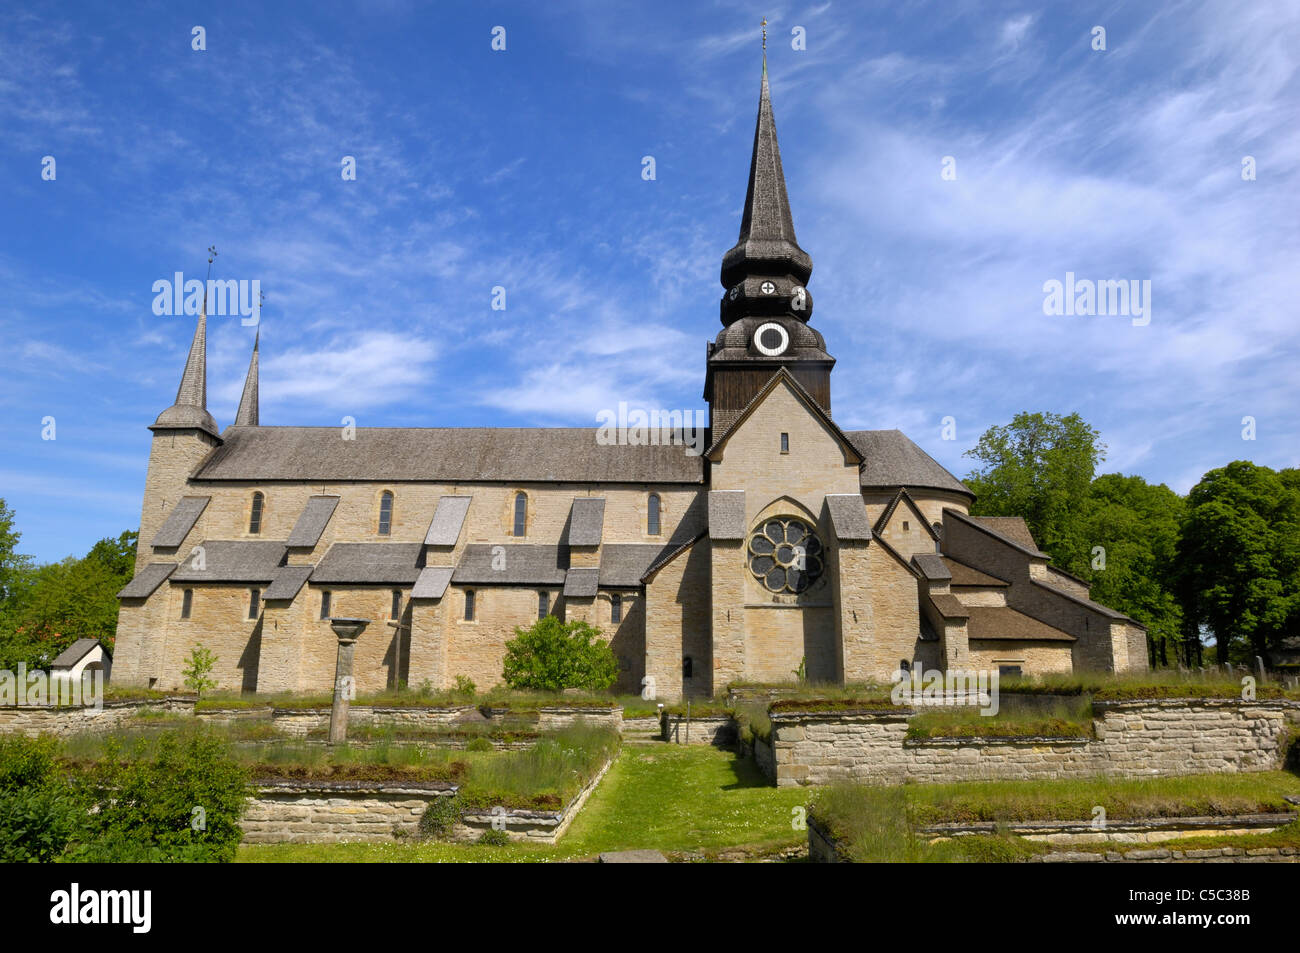 Façade of Varnhem abbey against the blue sky - Stock Image